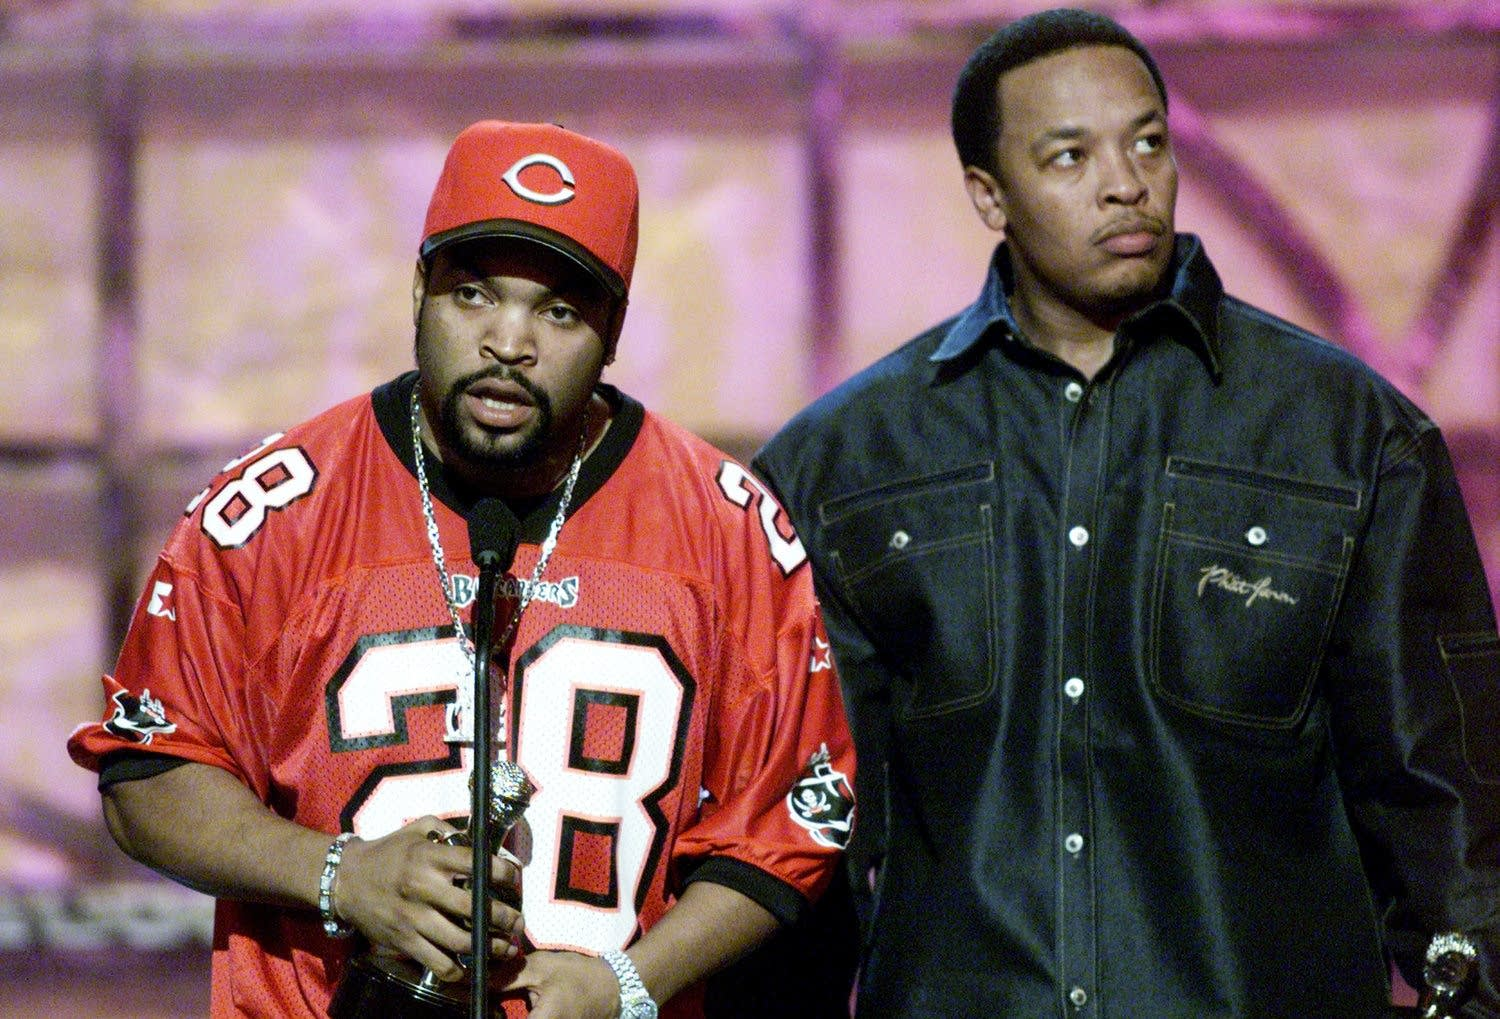 Ice Cube and Dr. Dre of N.W.A.